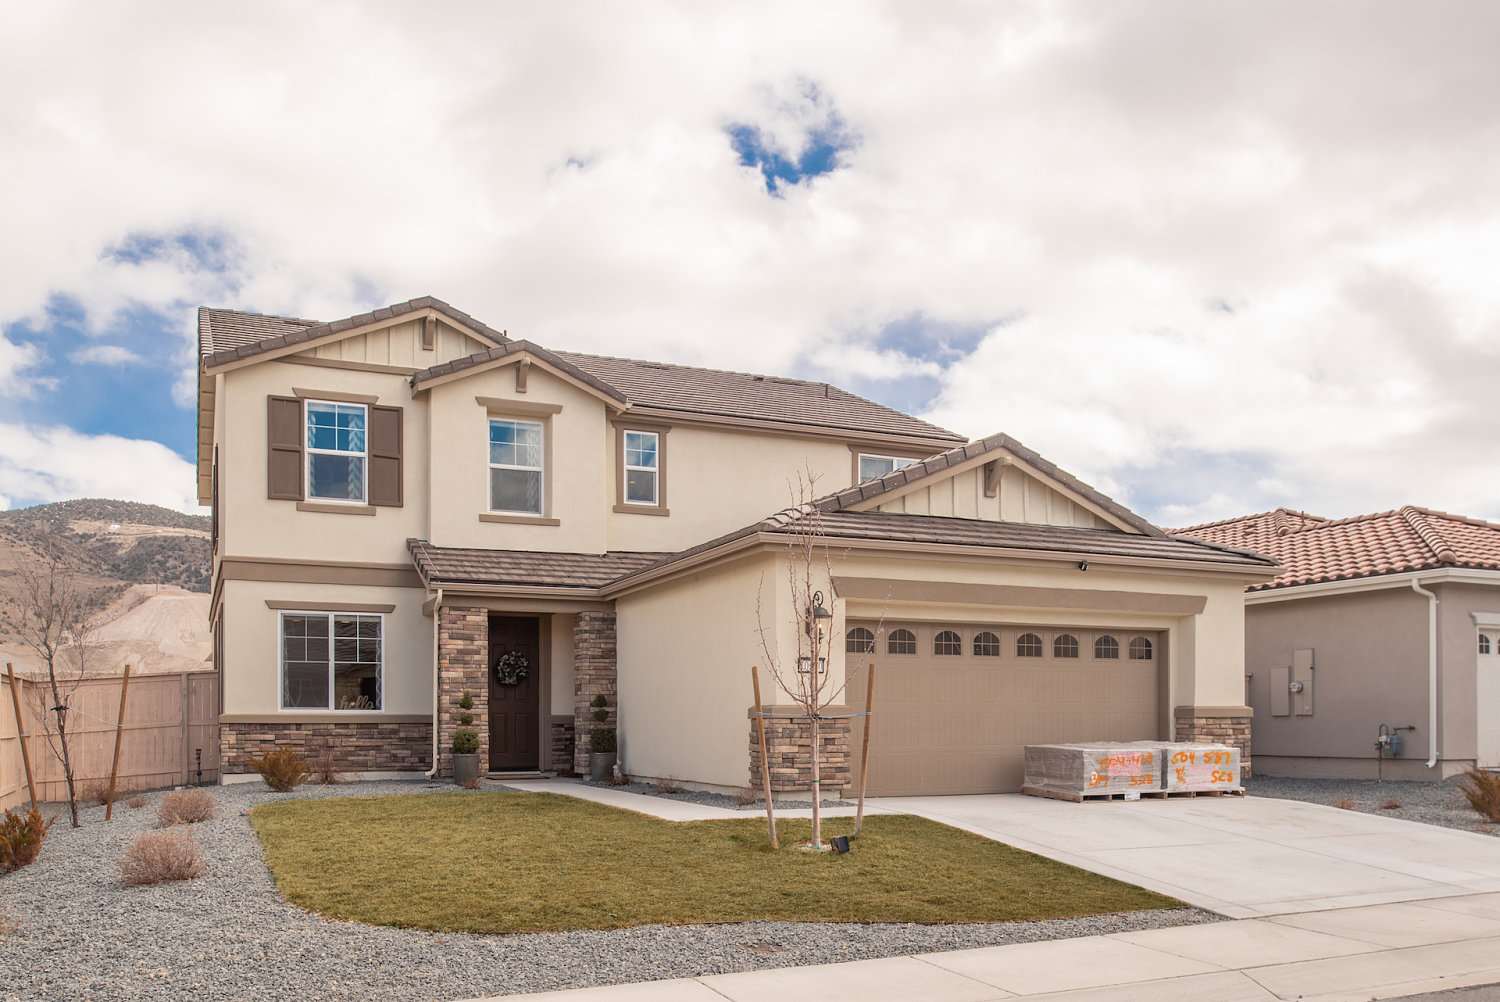 10660 Foxberry Park Drive - sold may 31, 2019 for $505,000